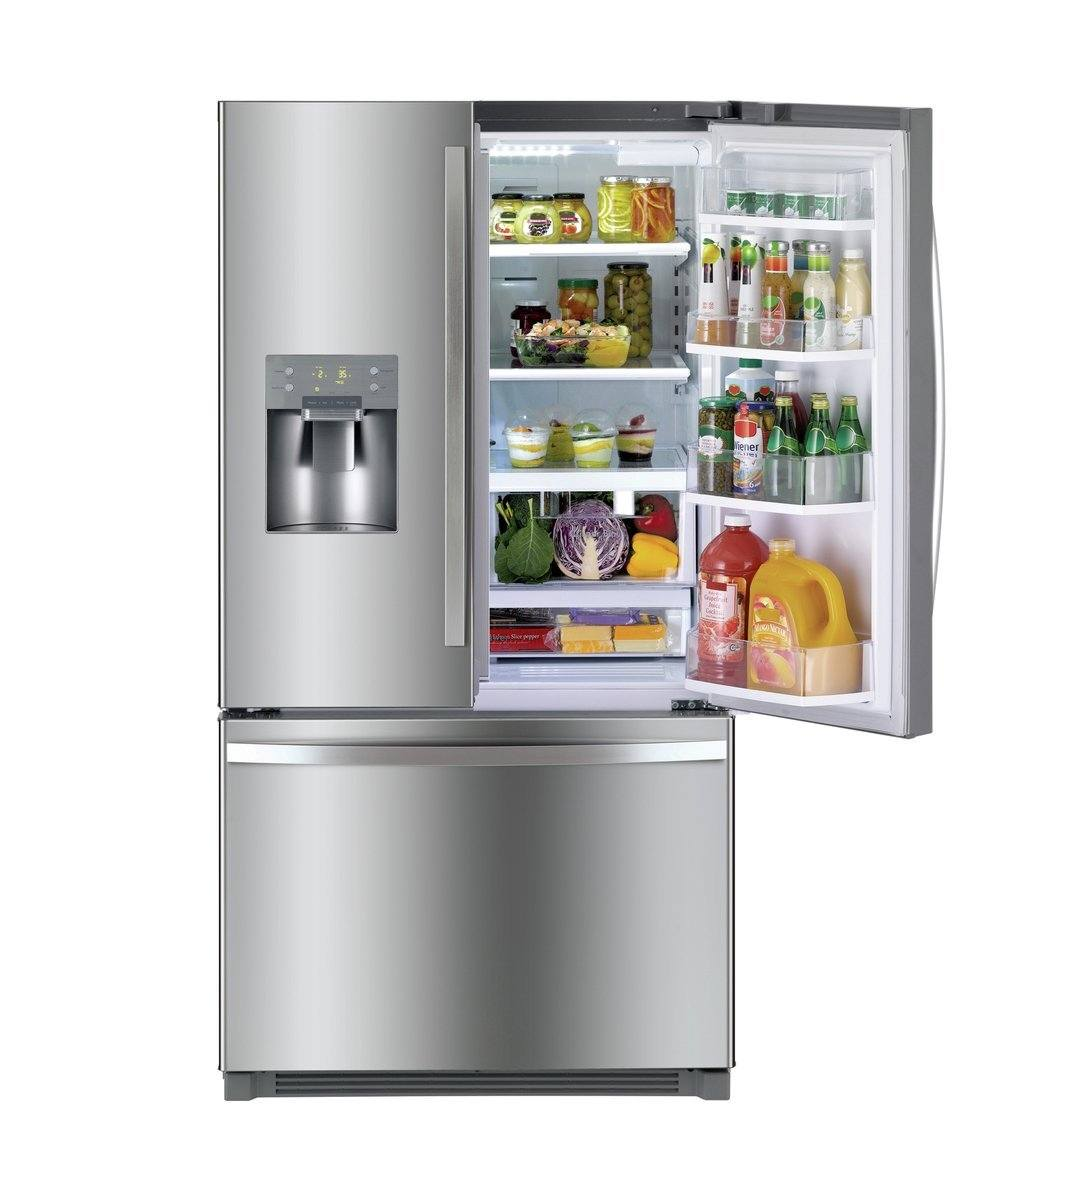 Kenmore 73045 25.6 cu.ft. French Door Refrigerator